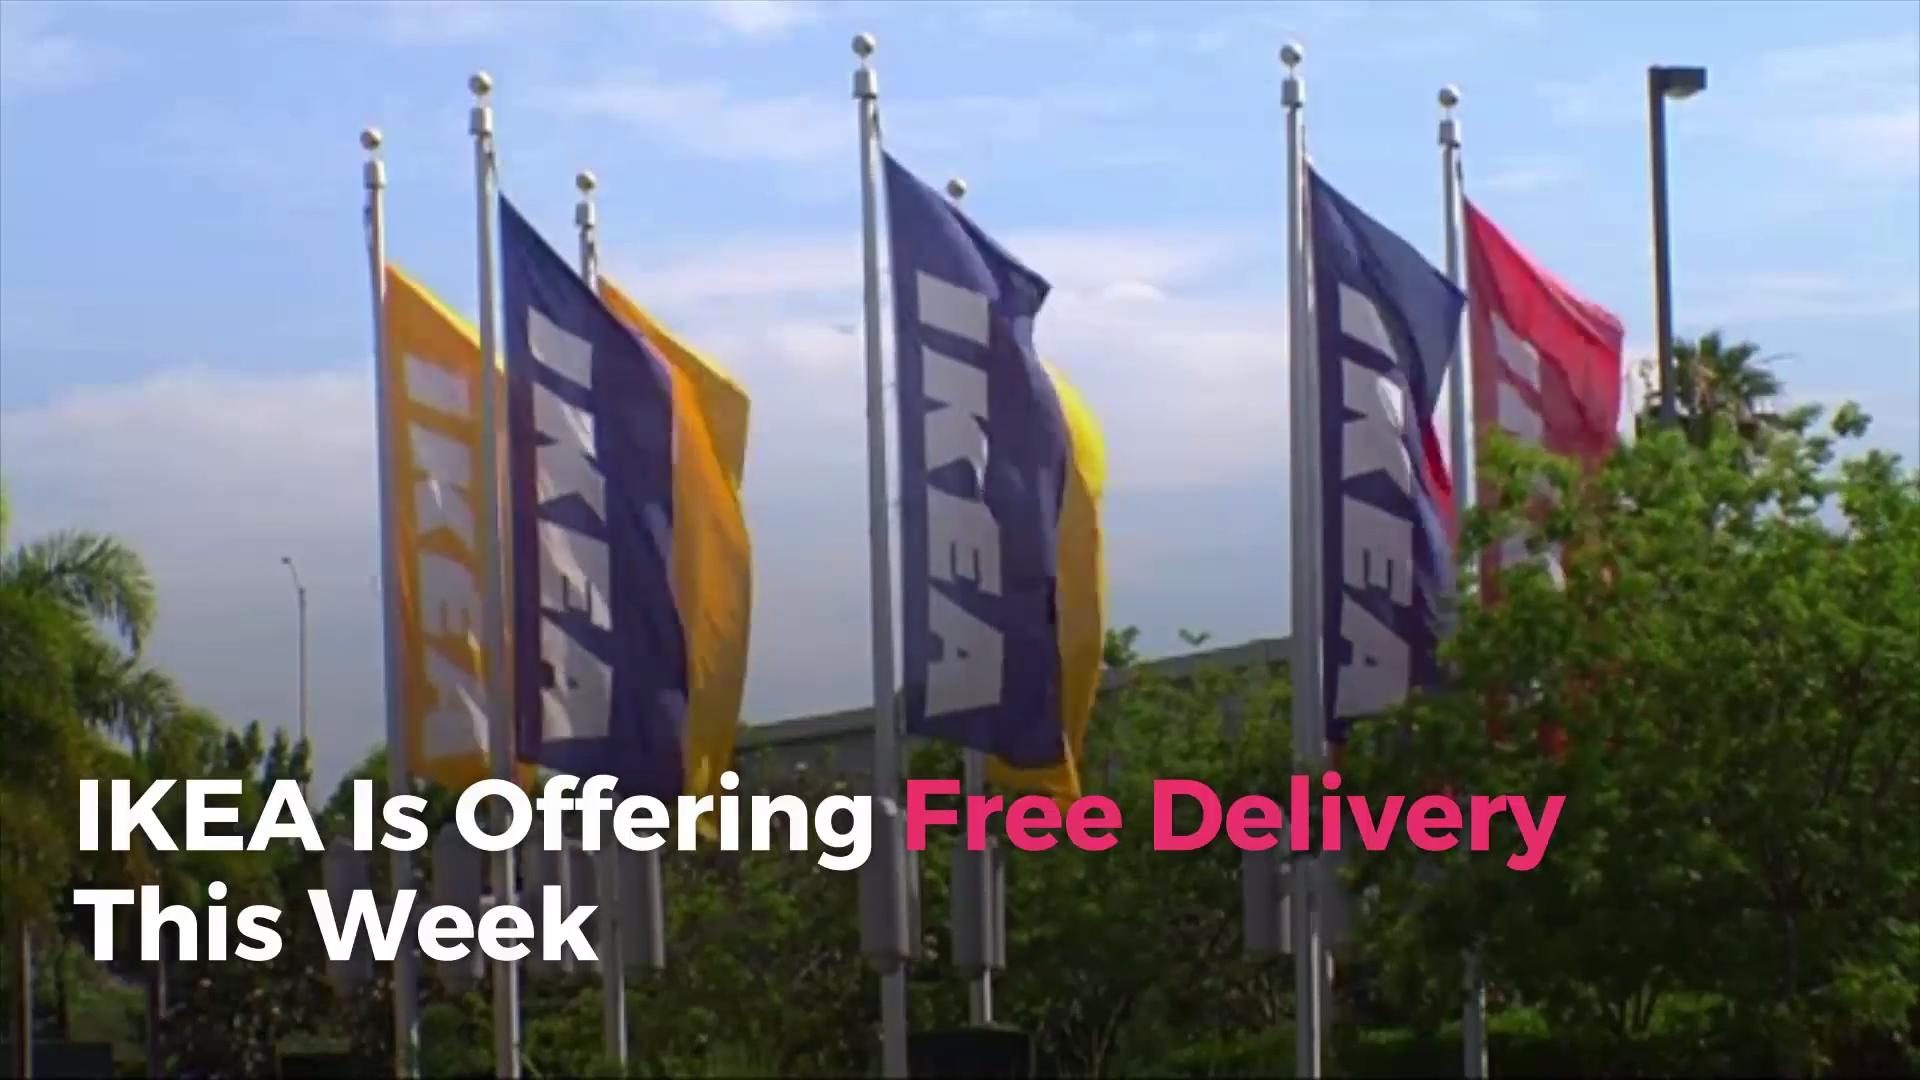 Ikea Bank Hotline Ikea Is Offering Free Delivery This Week Real Simple